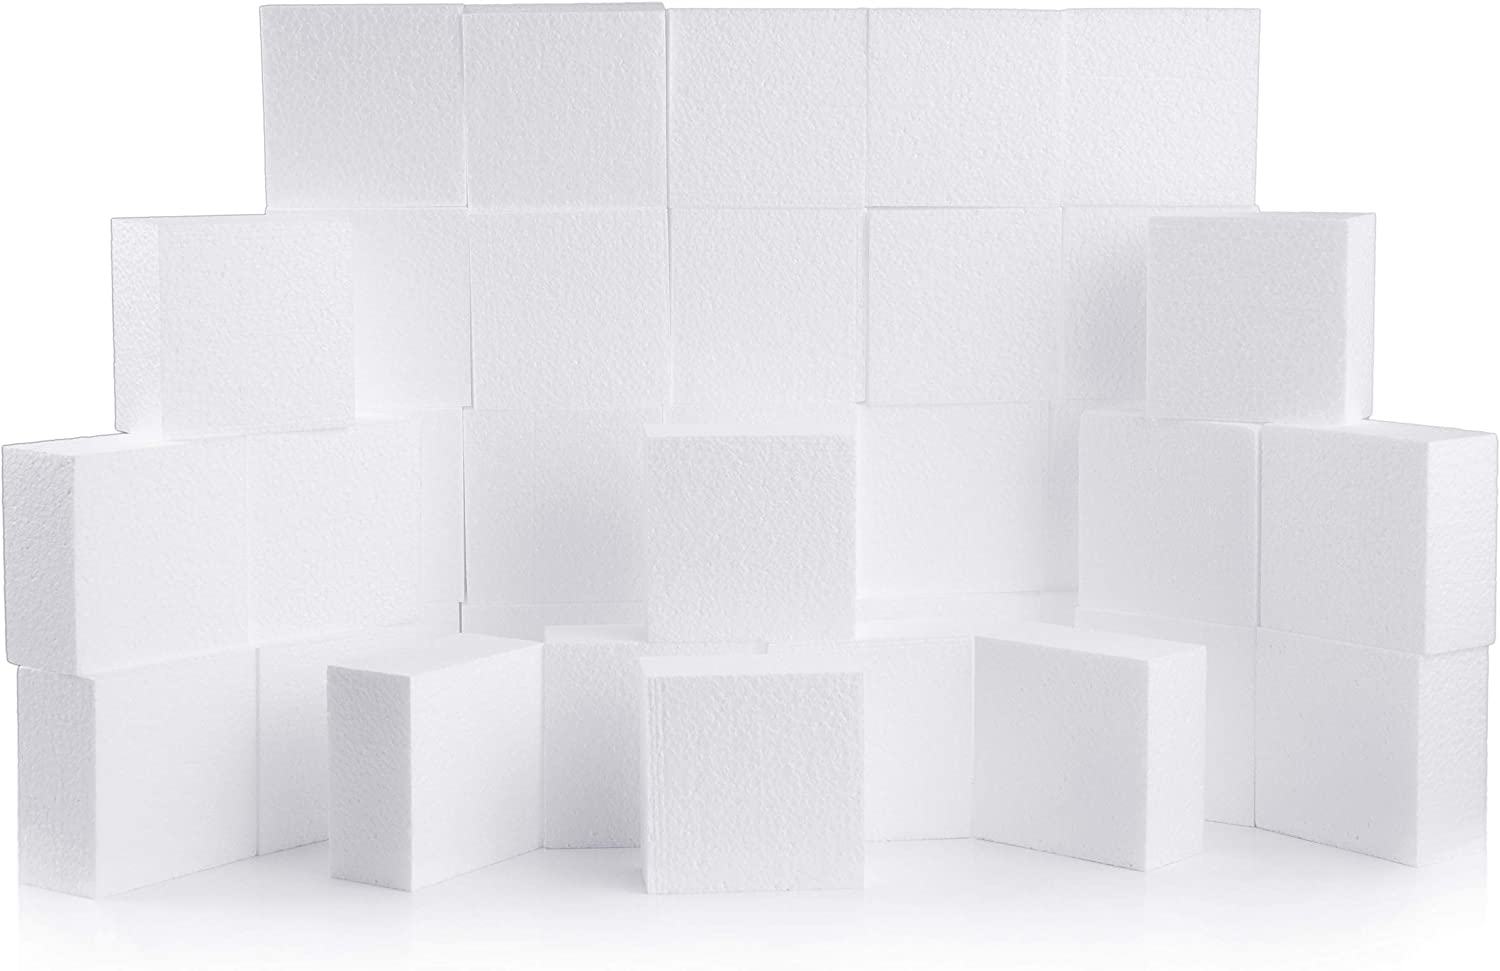 Silverlake Craft Foam Block - 36 Pack of 4x4x2 EPS Polystyrene Blocks for Crafting, Modeling, Art Projects and Floral Arrangements - Sculpting Blocks for DIY School & Home Art Projects (36)